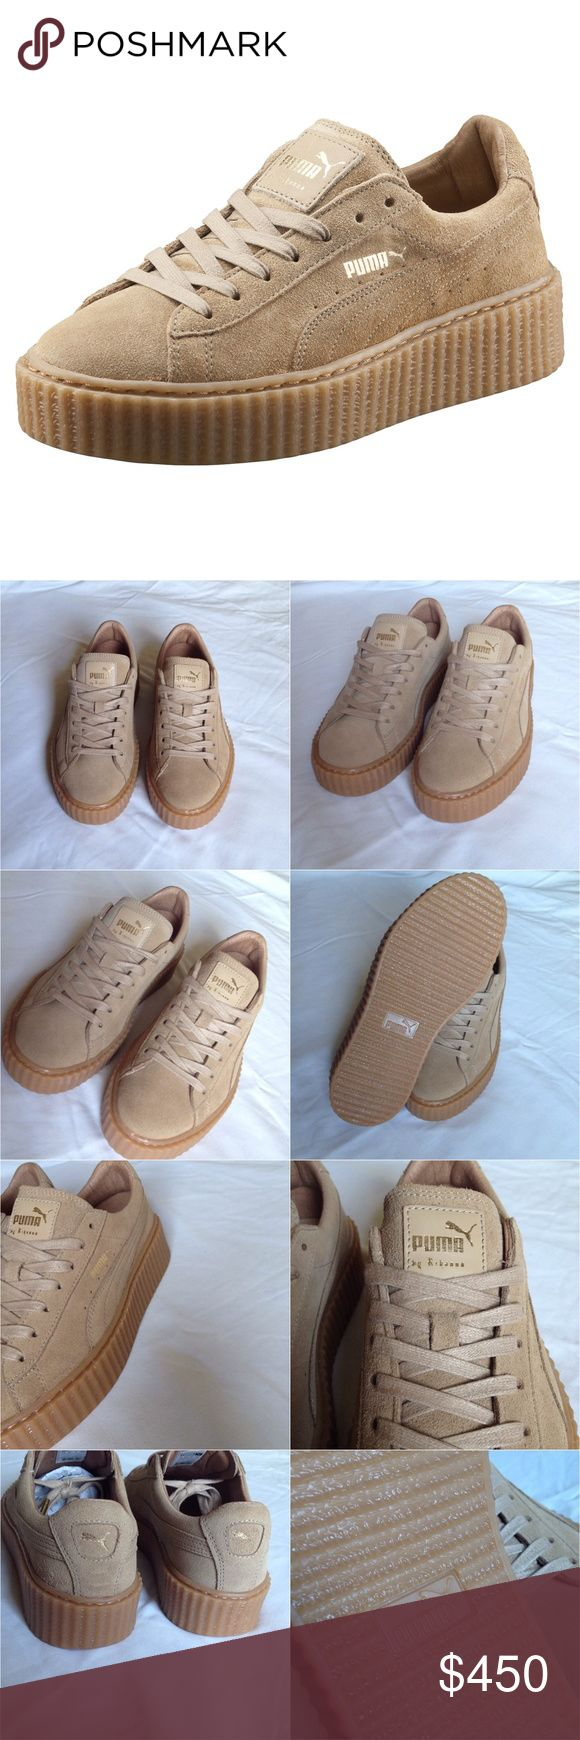 Puma x Fenty by Rihanna Oatmeal Tan Suede Creepers Brand: Puma Style: Puma x Fenty by Rihanna Creeper Color: Oatmeal/Oatmeal   These shoes are brand new in box. Ships with original box, dust bag and extra laces.   Price is firm. Puma Shoes Sneakers